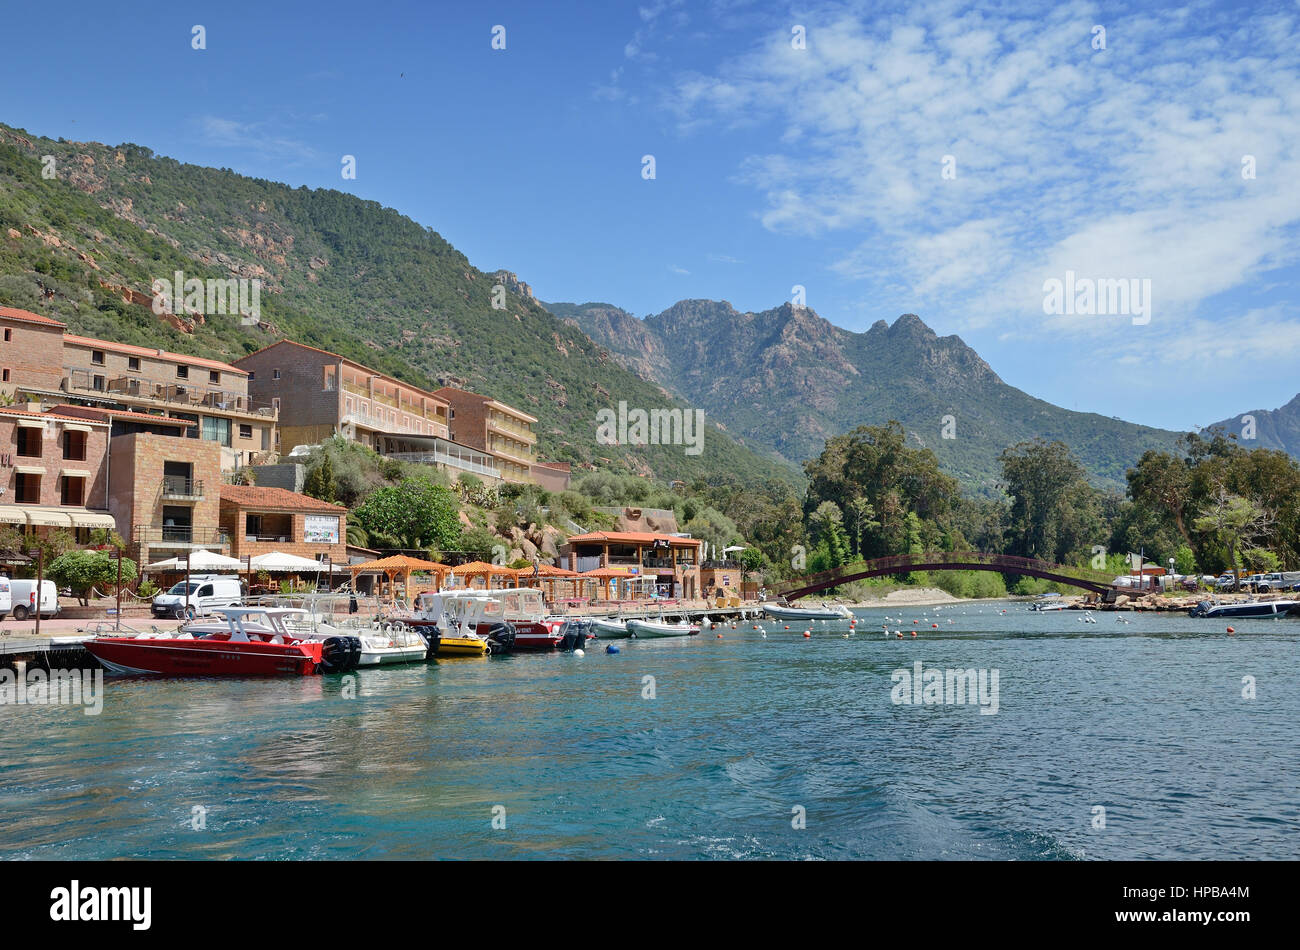 Coastal village Porto has a small port. It is situated in the centre of the most scenic highlights of Corsica. - Stock Image